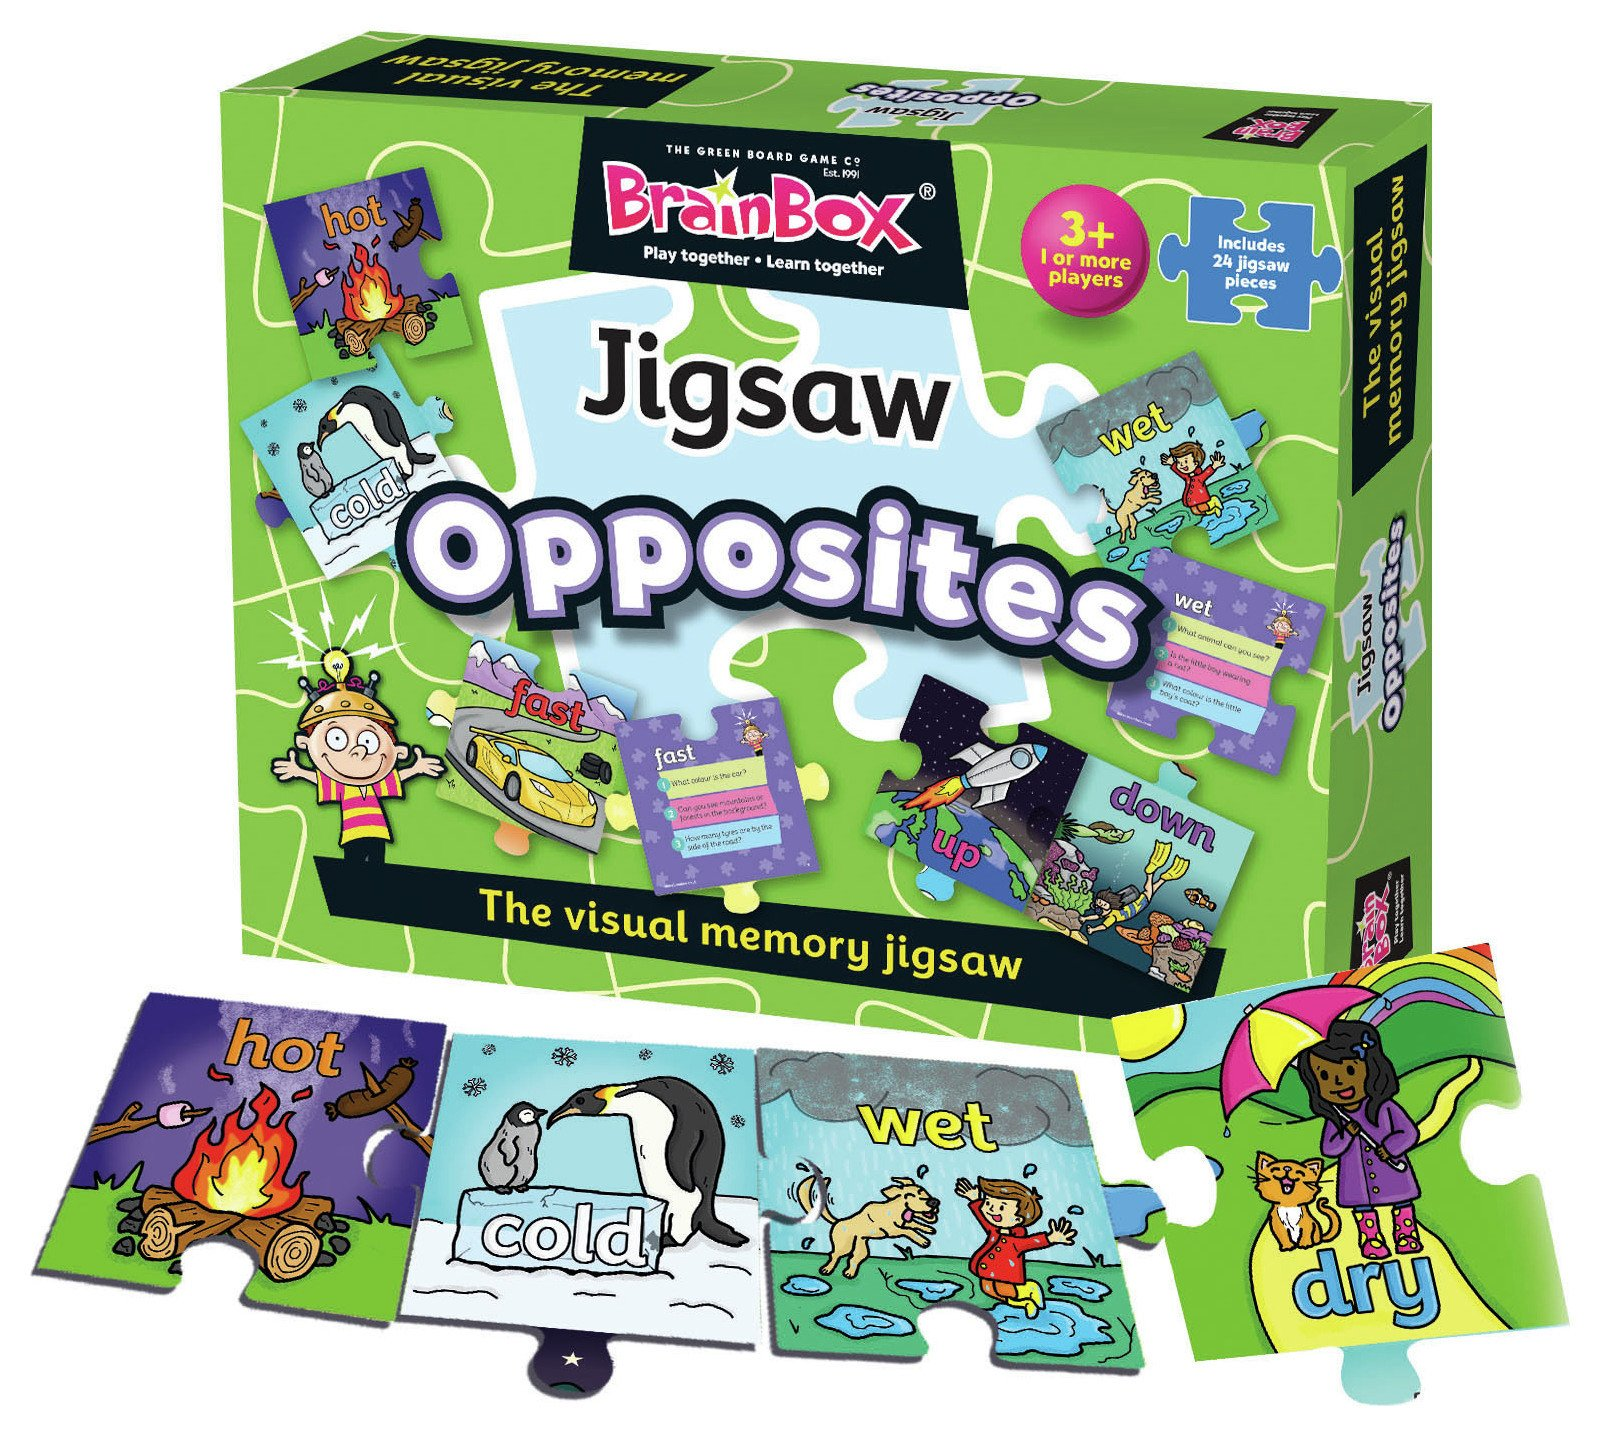 Image of Brainbox Opposites Jigsaw and Game.